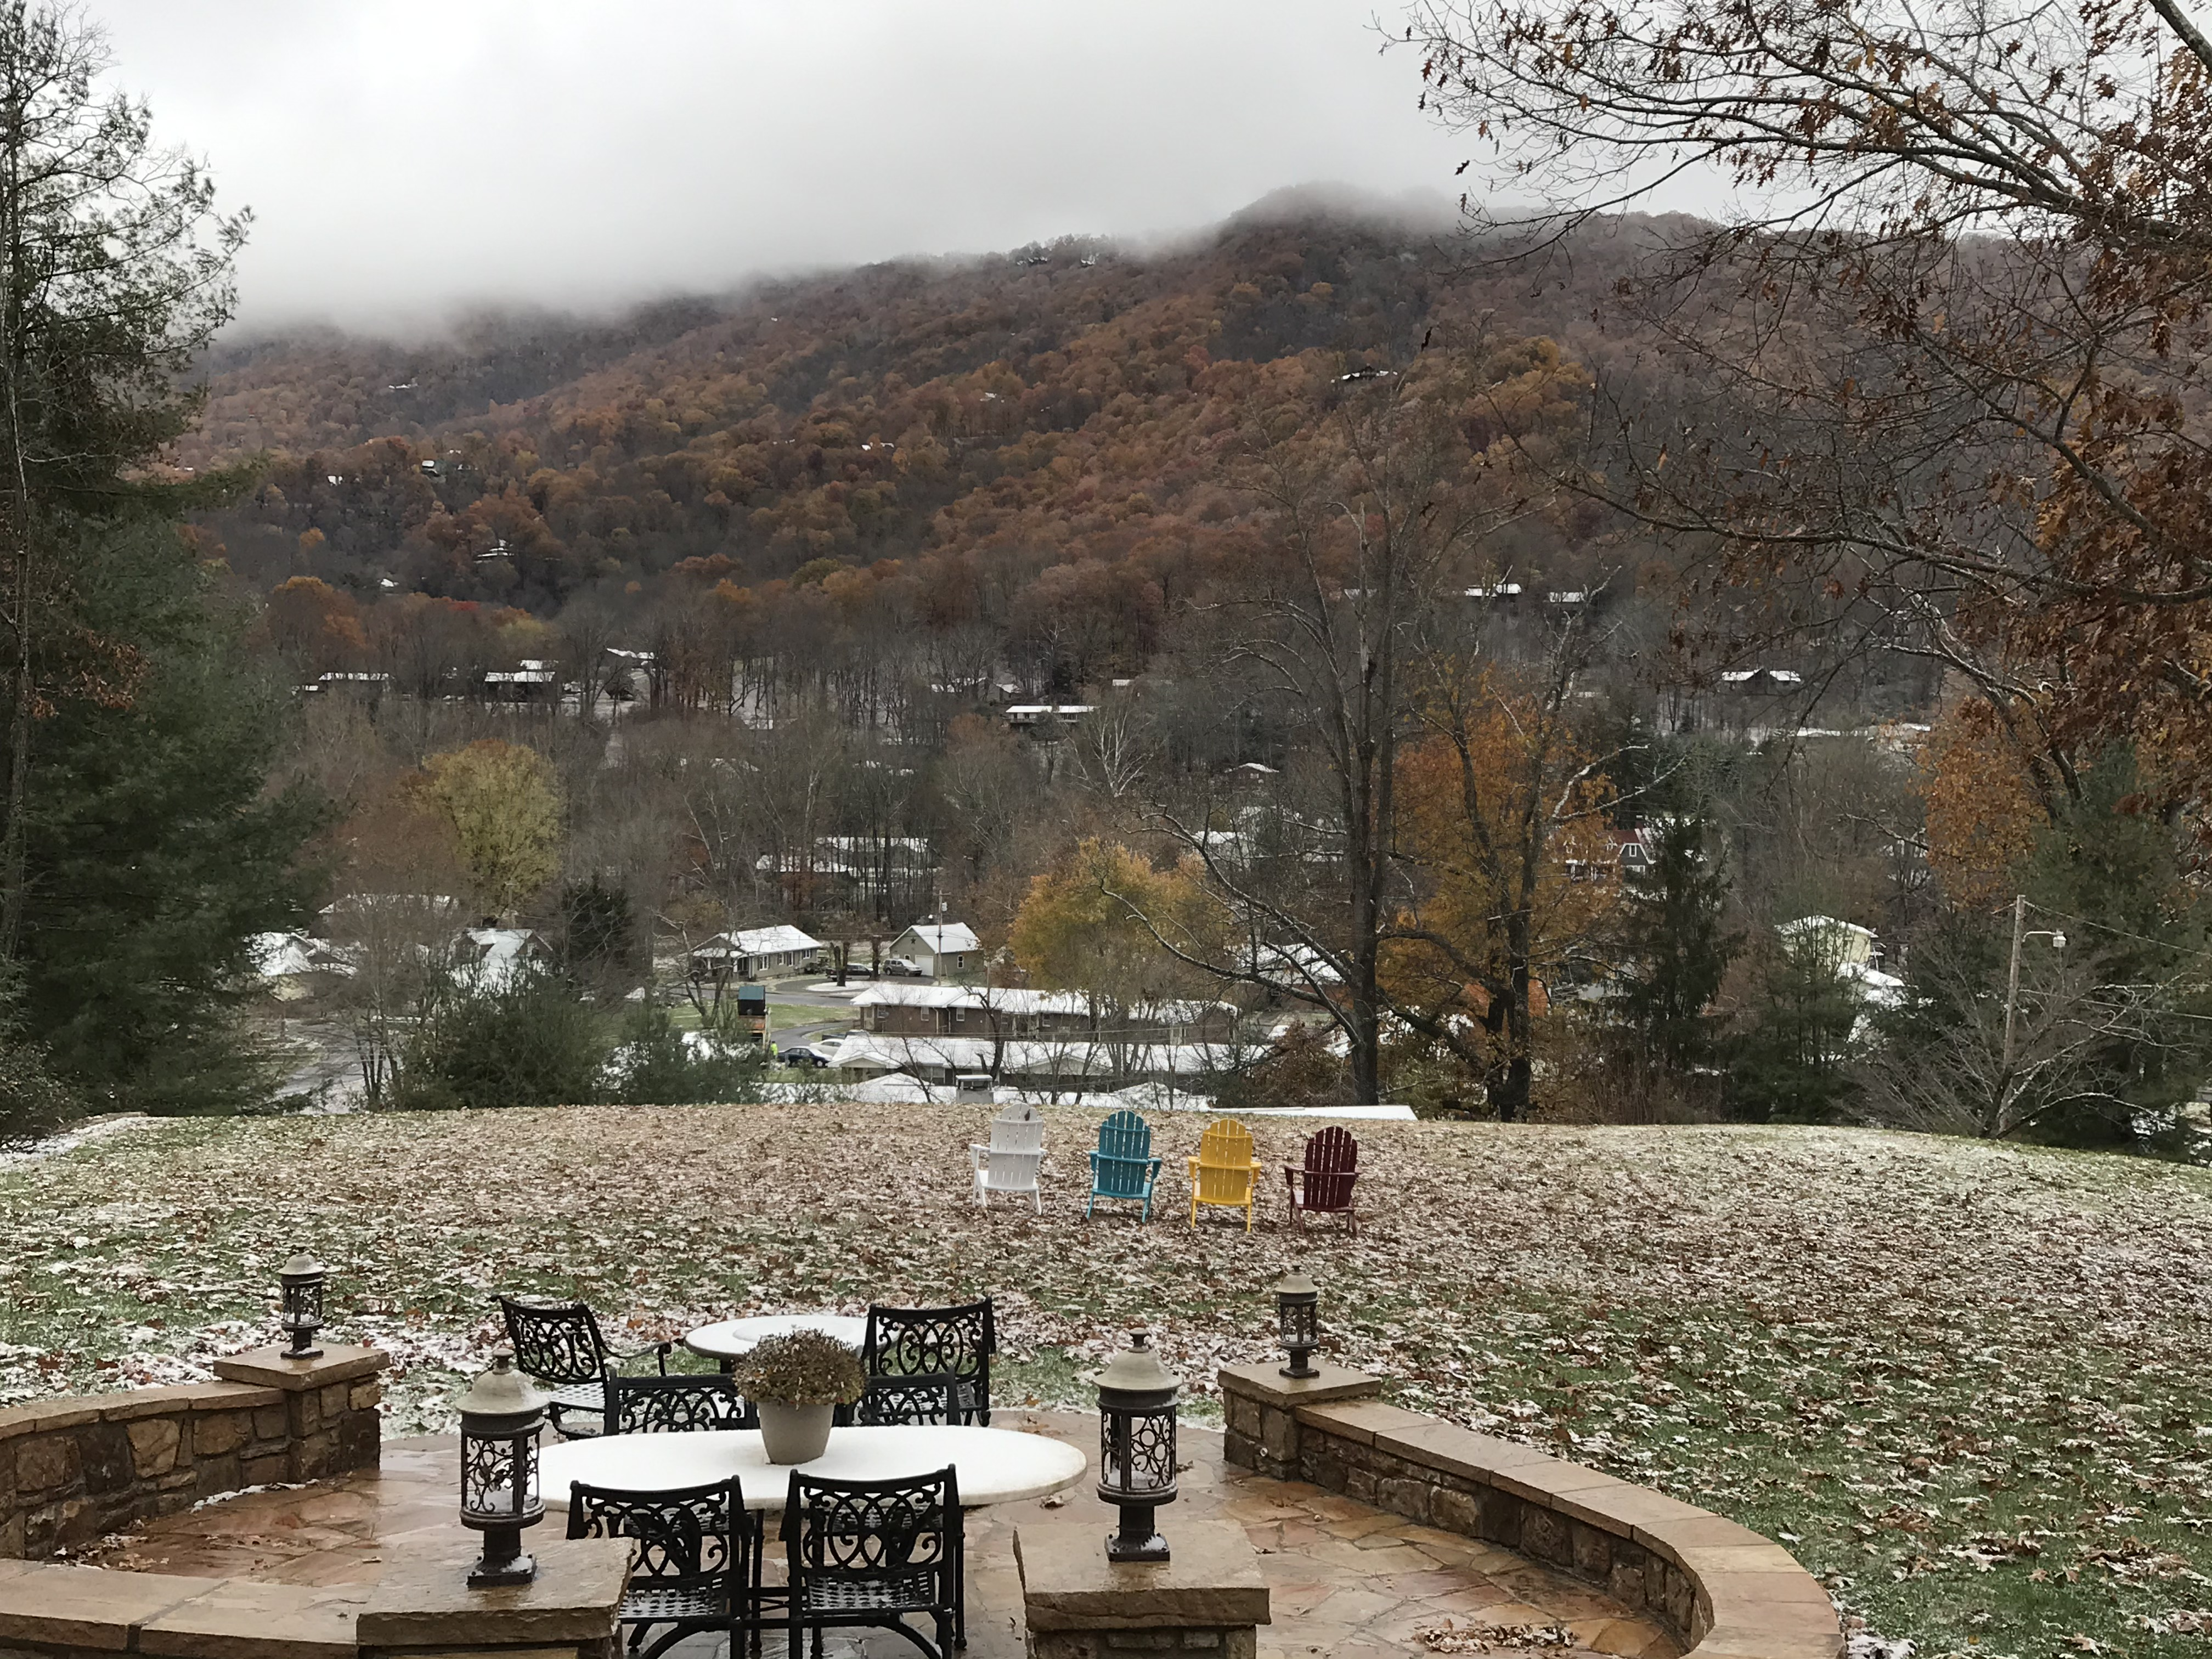 Snowy mountain view from Andon-Reid Inn porch